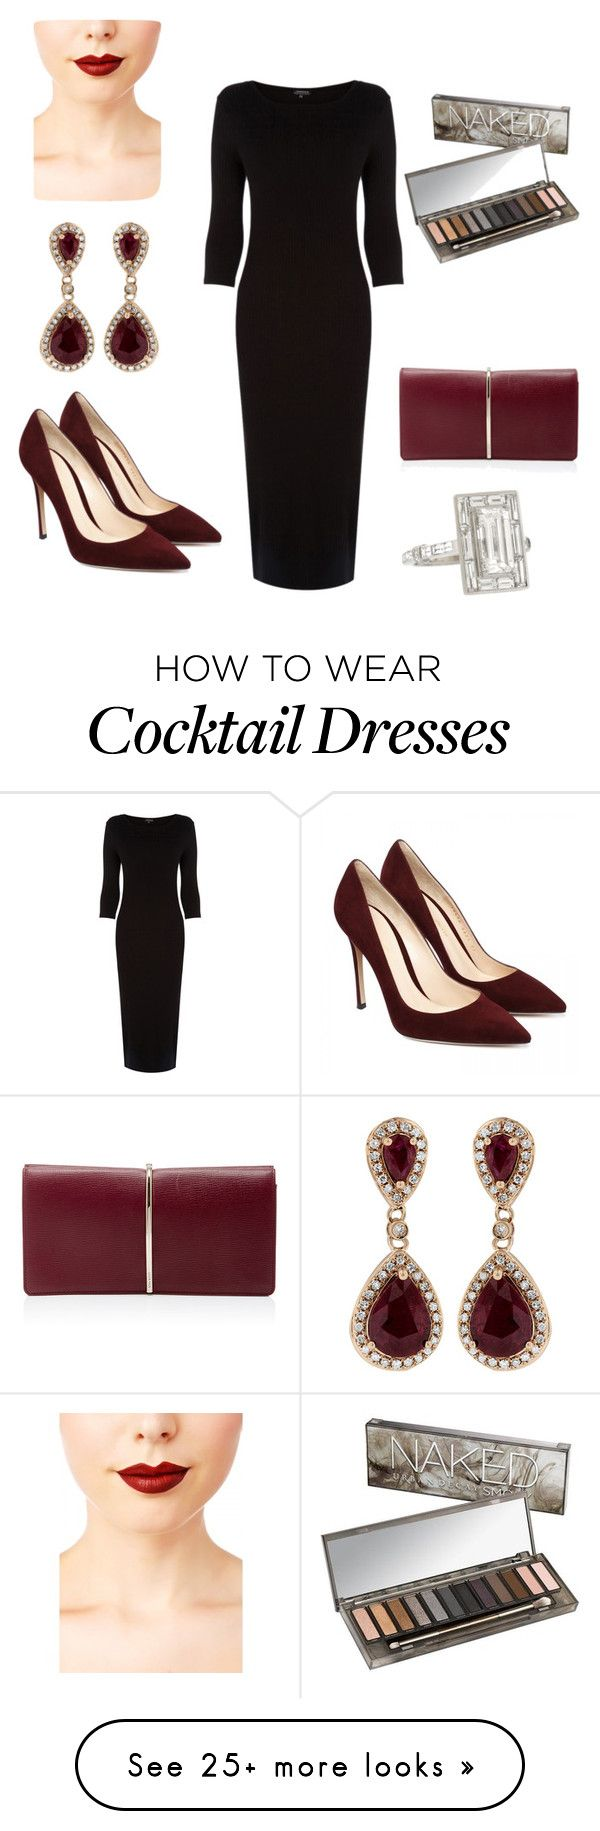 """Christmas cocktail"" by clmccallum on Polyvore featuring Warehouse, Effy Jewelry, Nina Ricci, Jeffree Star and Urban Decay"